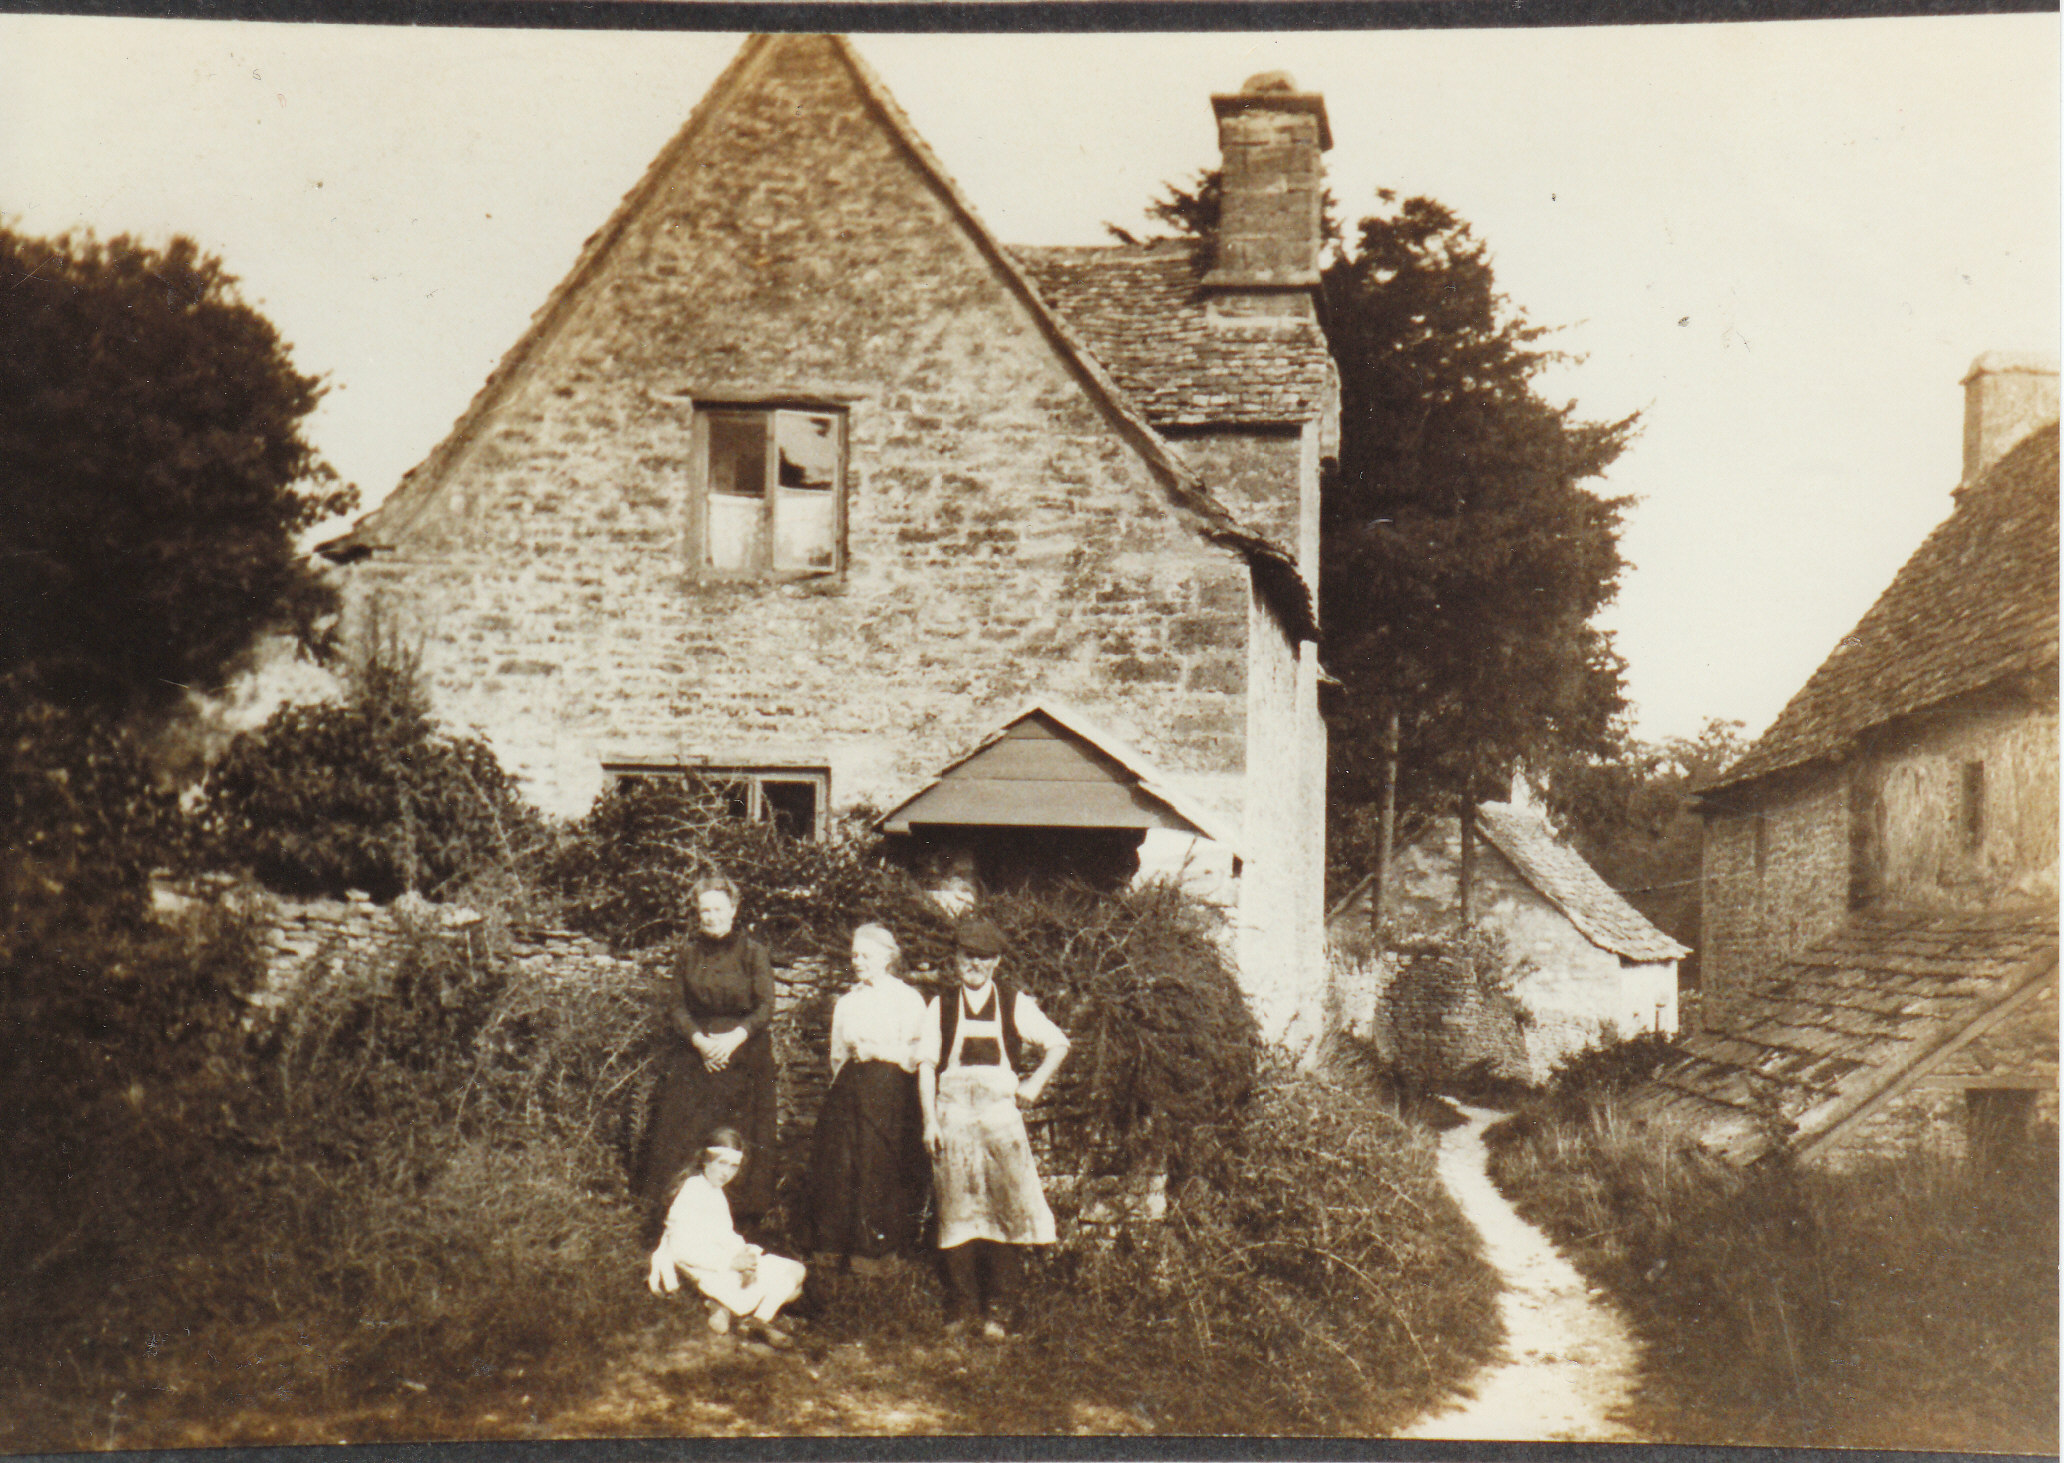 Badger's Cottage, Gadbridge. John Collett - probably the last of the Chedworth shoemakers outside his cottage.